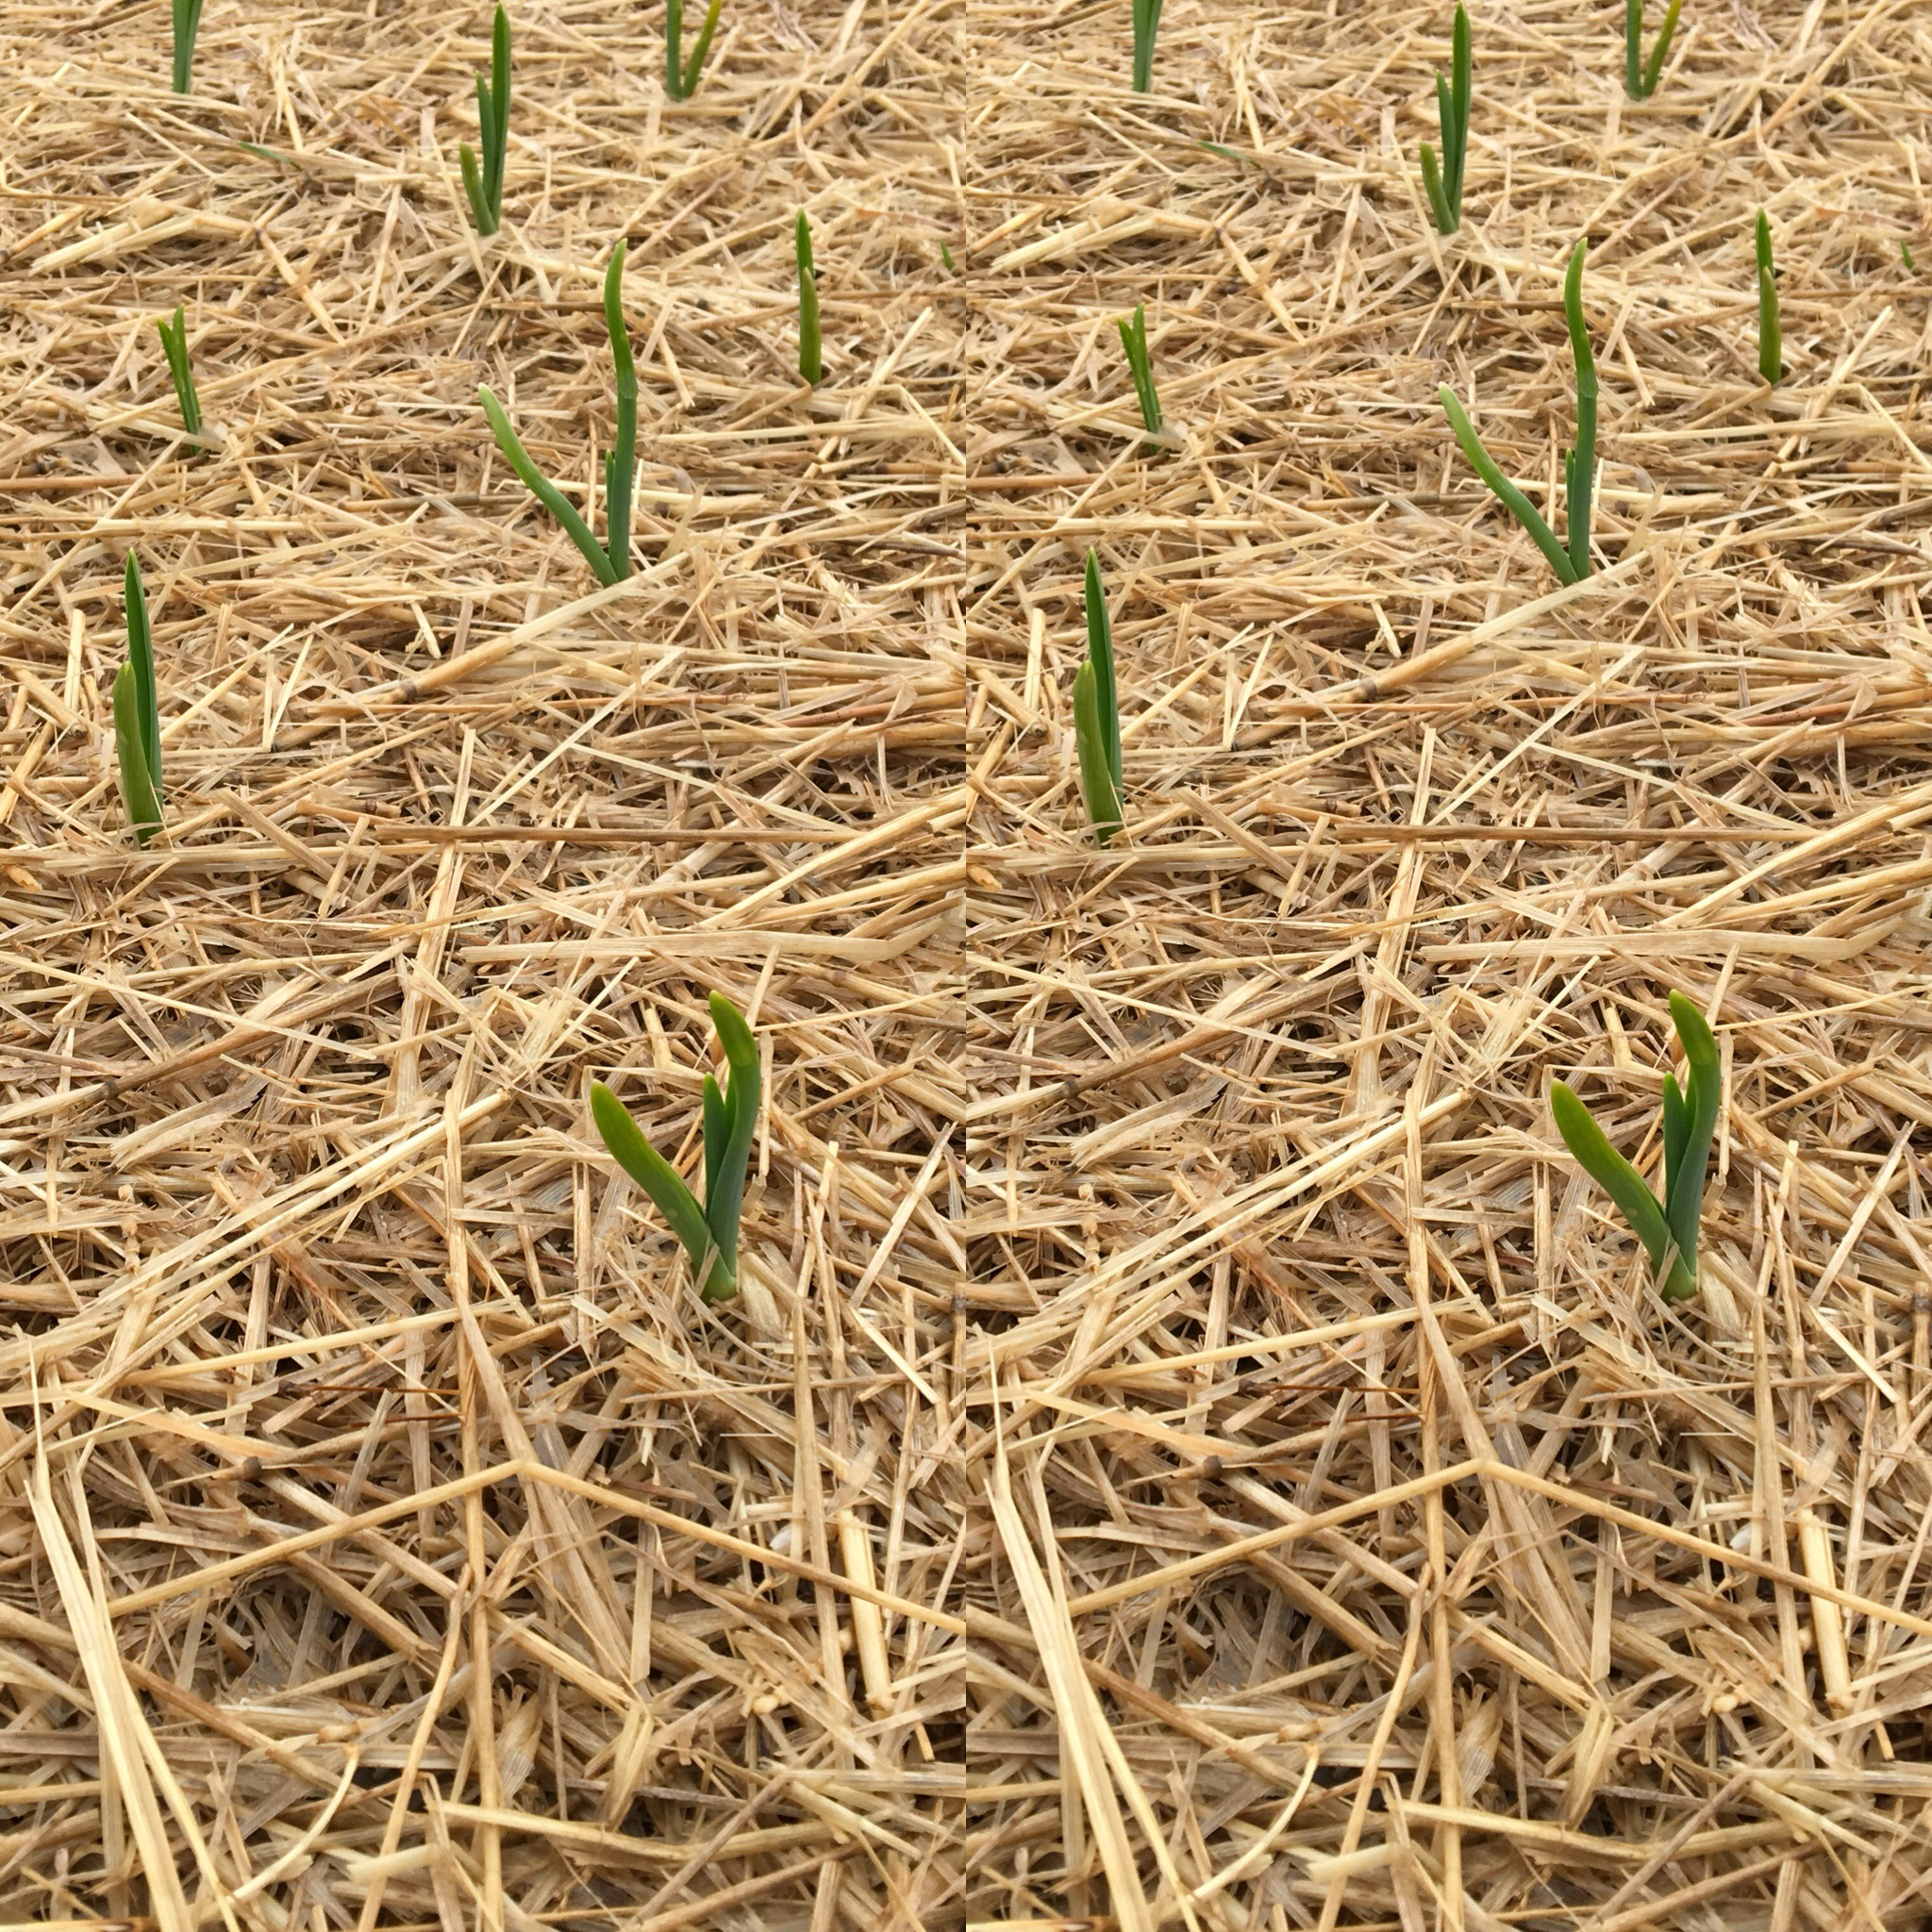 Dax Funderburk - late winter emergence .JPG